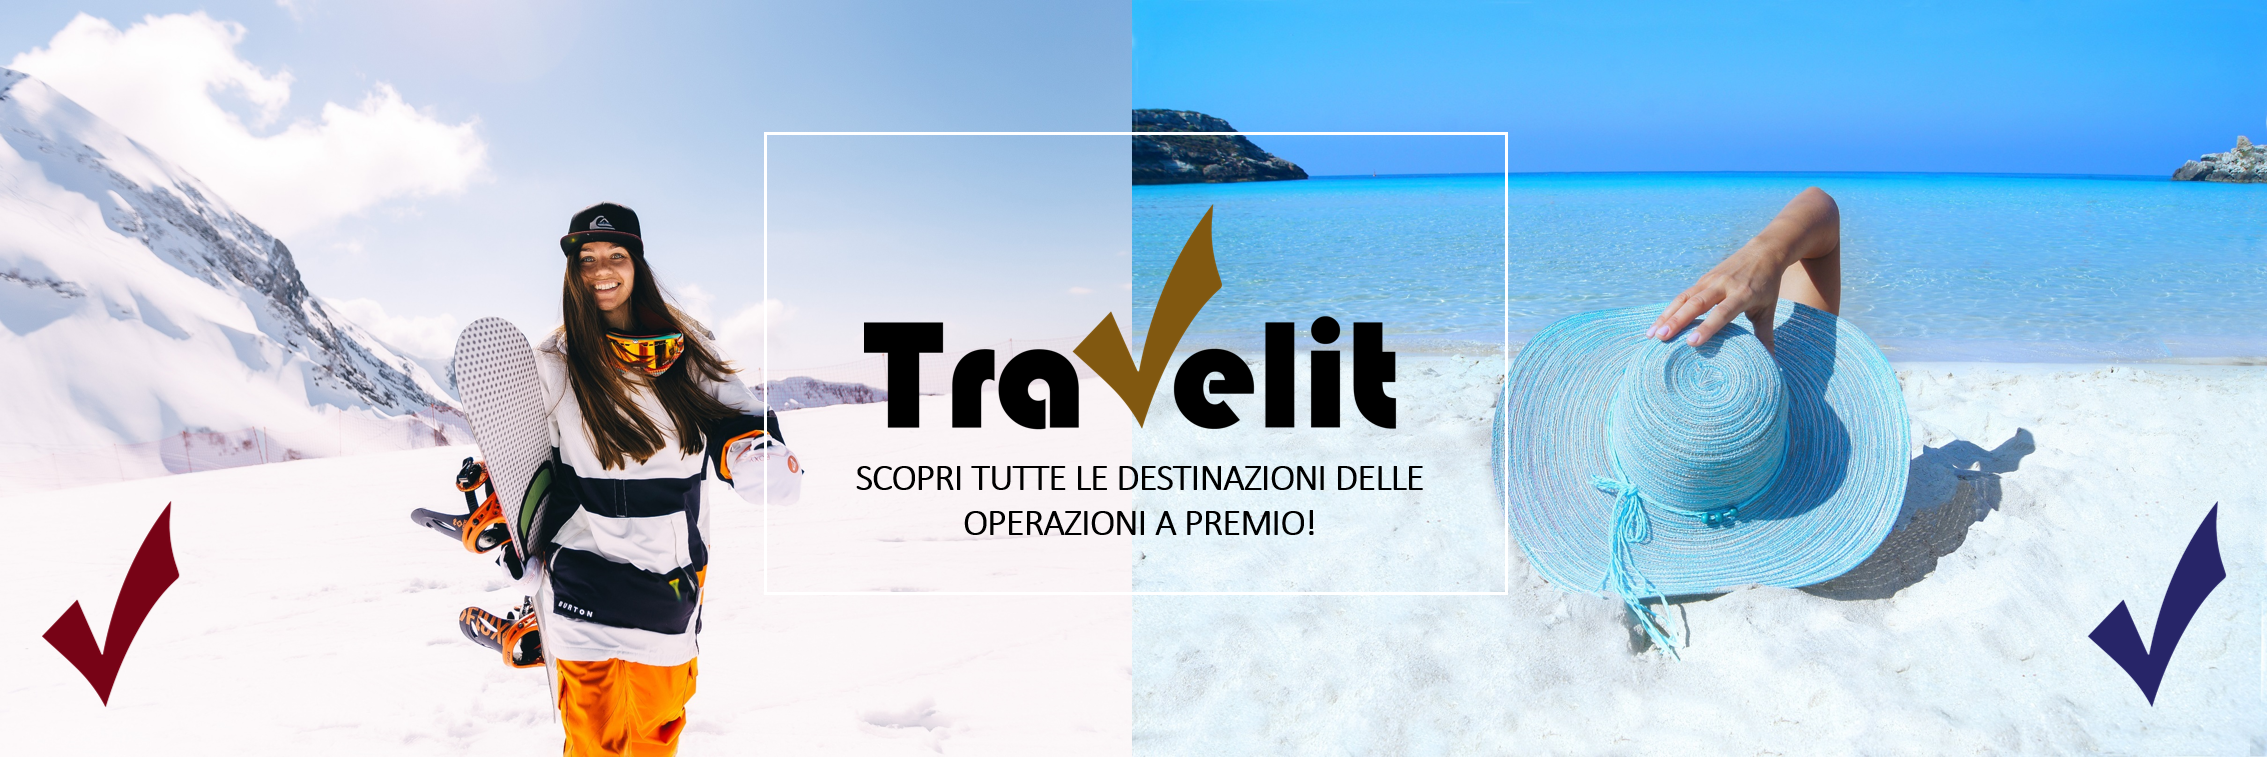 travel-promo-te-flag